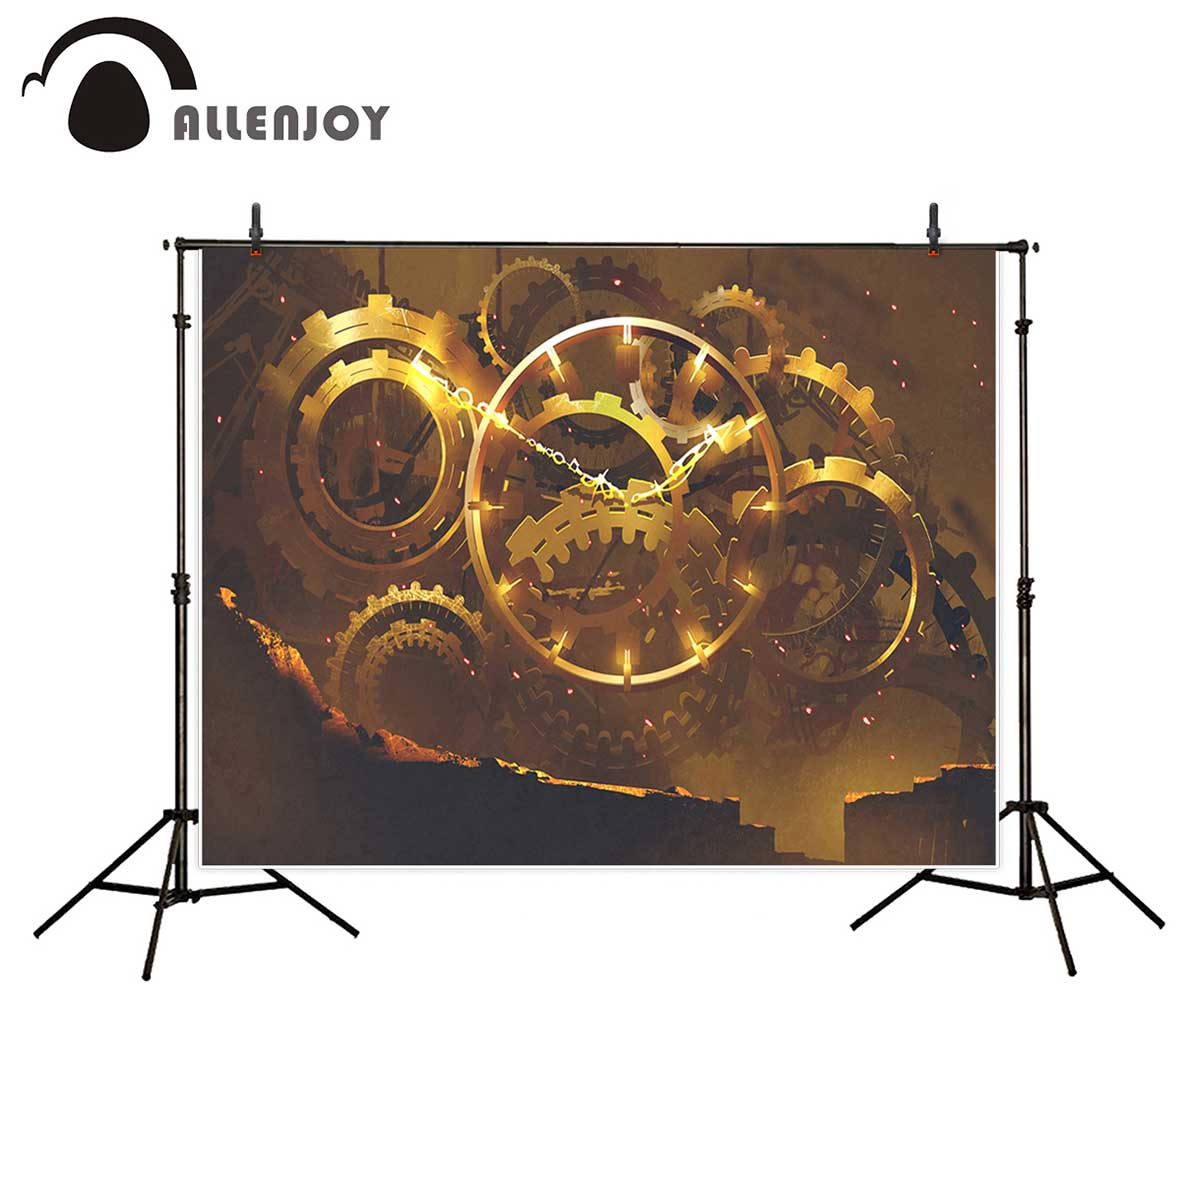 Allenjoy photography backdrops Golden Gear Clock Art Background backgrounds for photo studio vinyl backdrops for photography